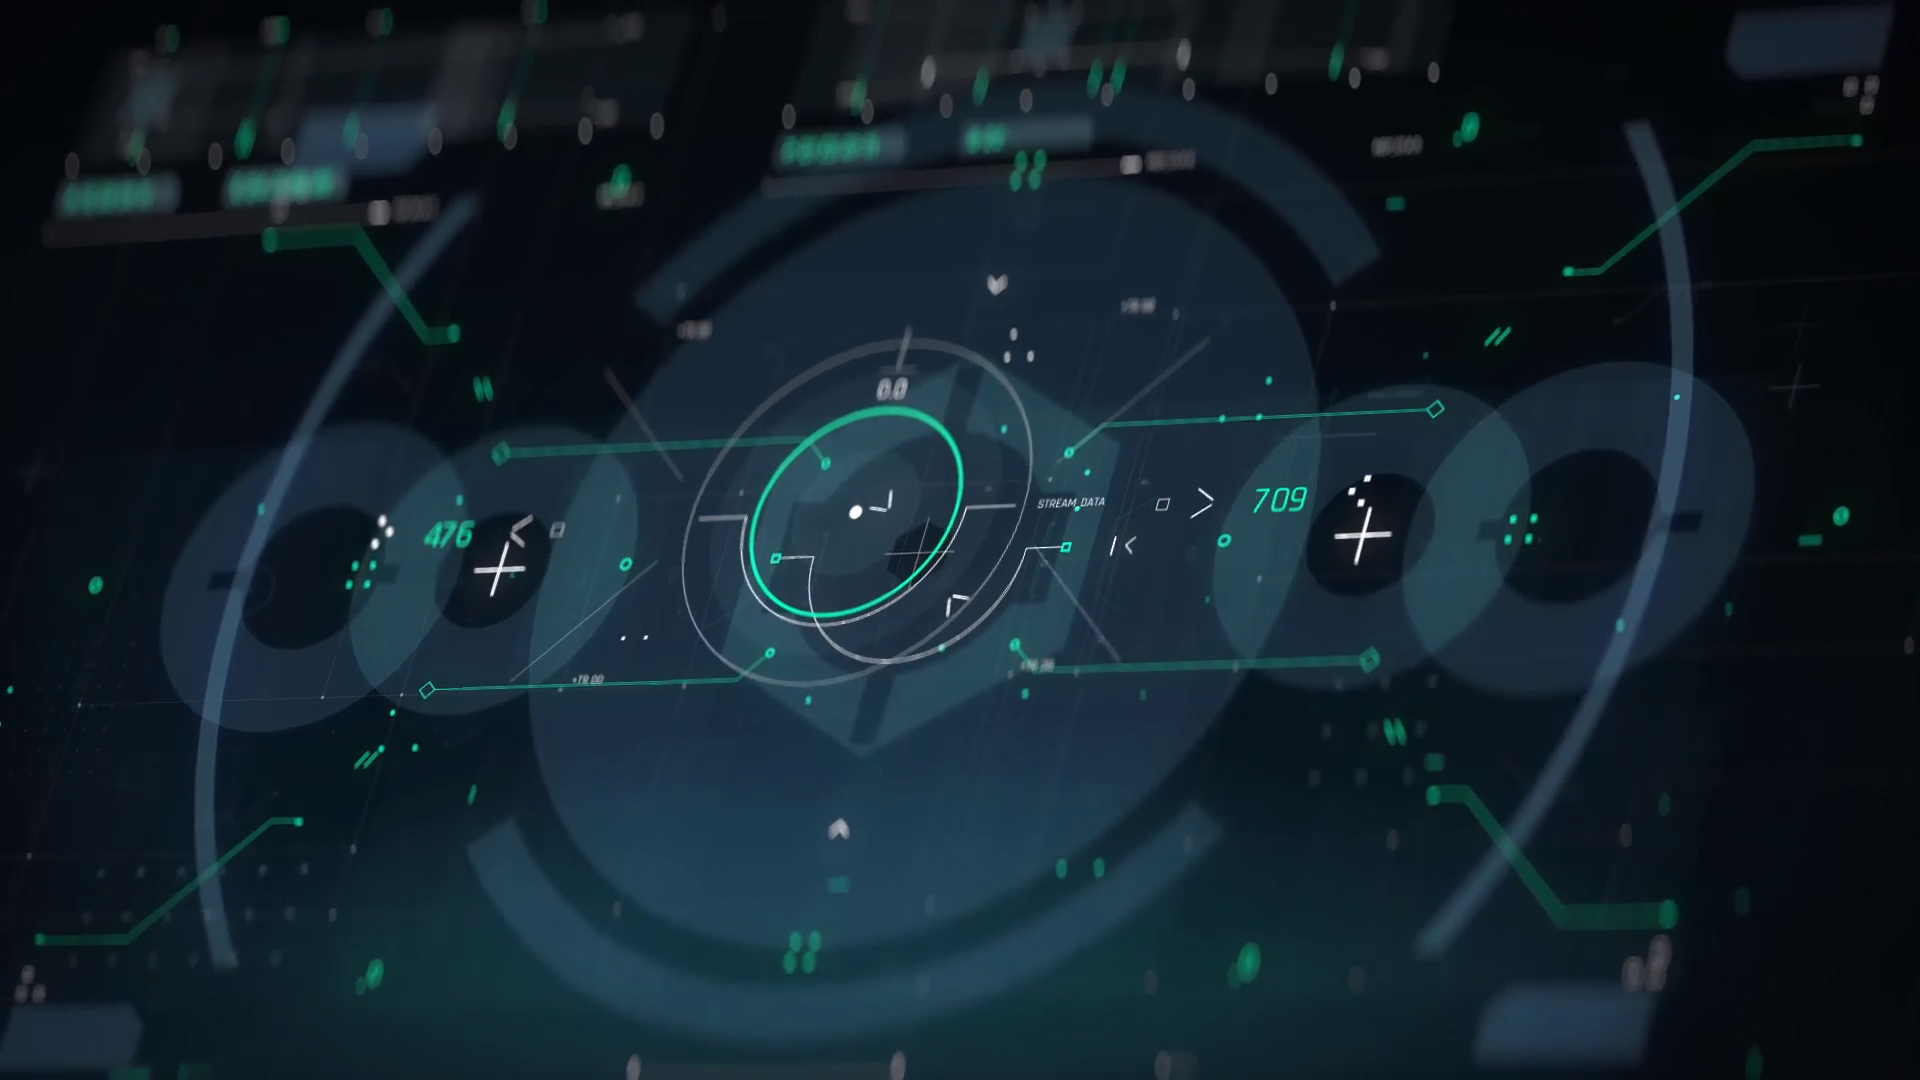 Sci-Fi Interface HUD FUI Pack #interfacedesign